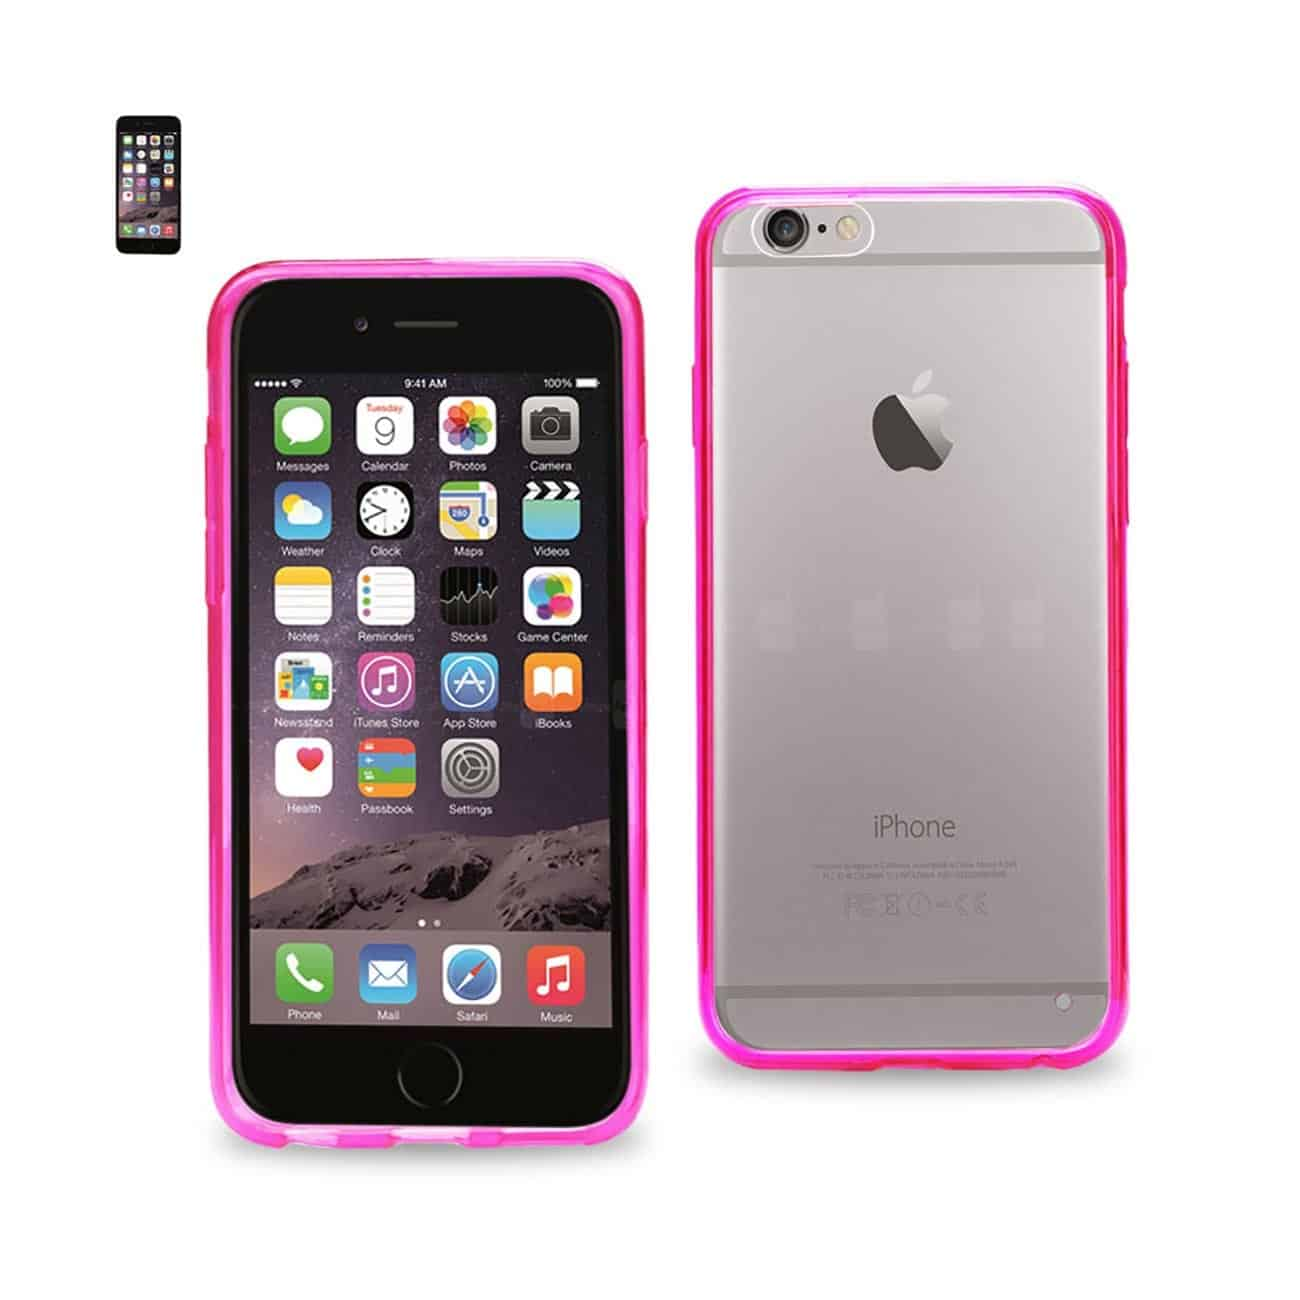 IPHONE 6 CLEAR BACK FRAME BUMPER CASE IN PINK